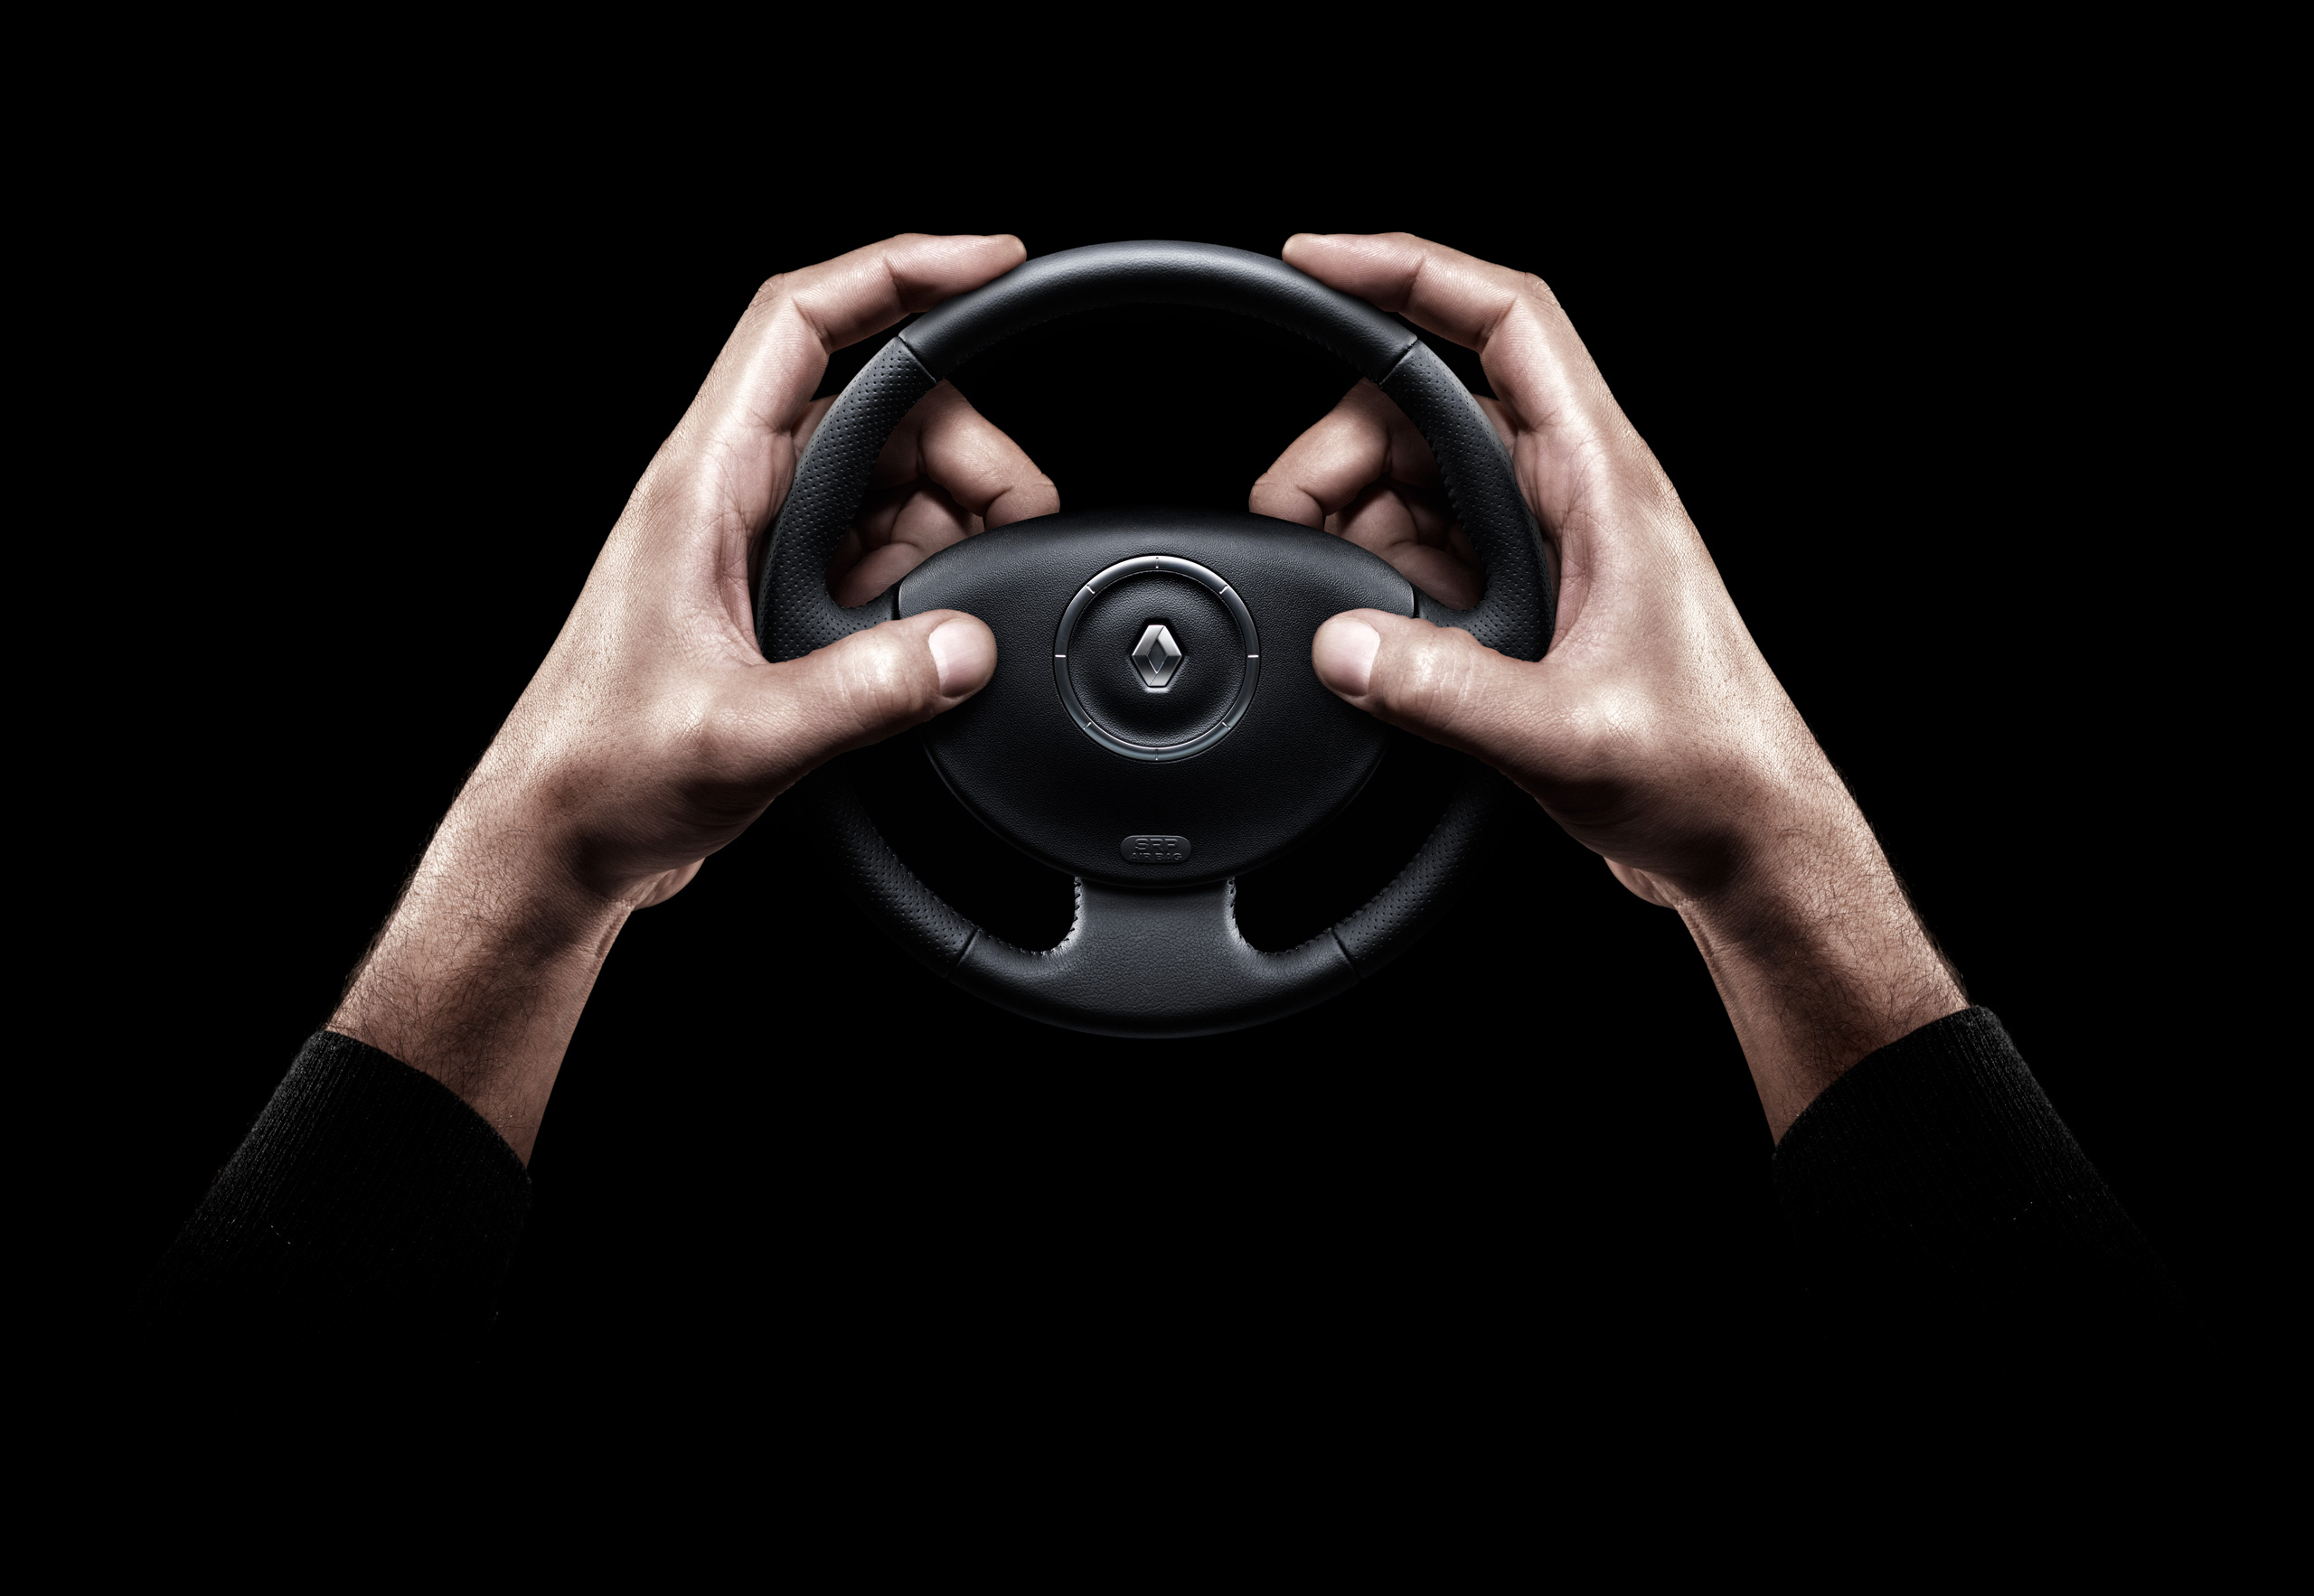 Renault_PSP_DriveOrPlay_Hands